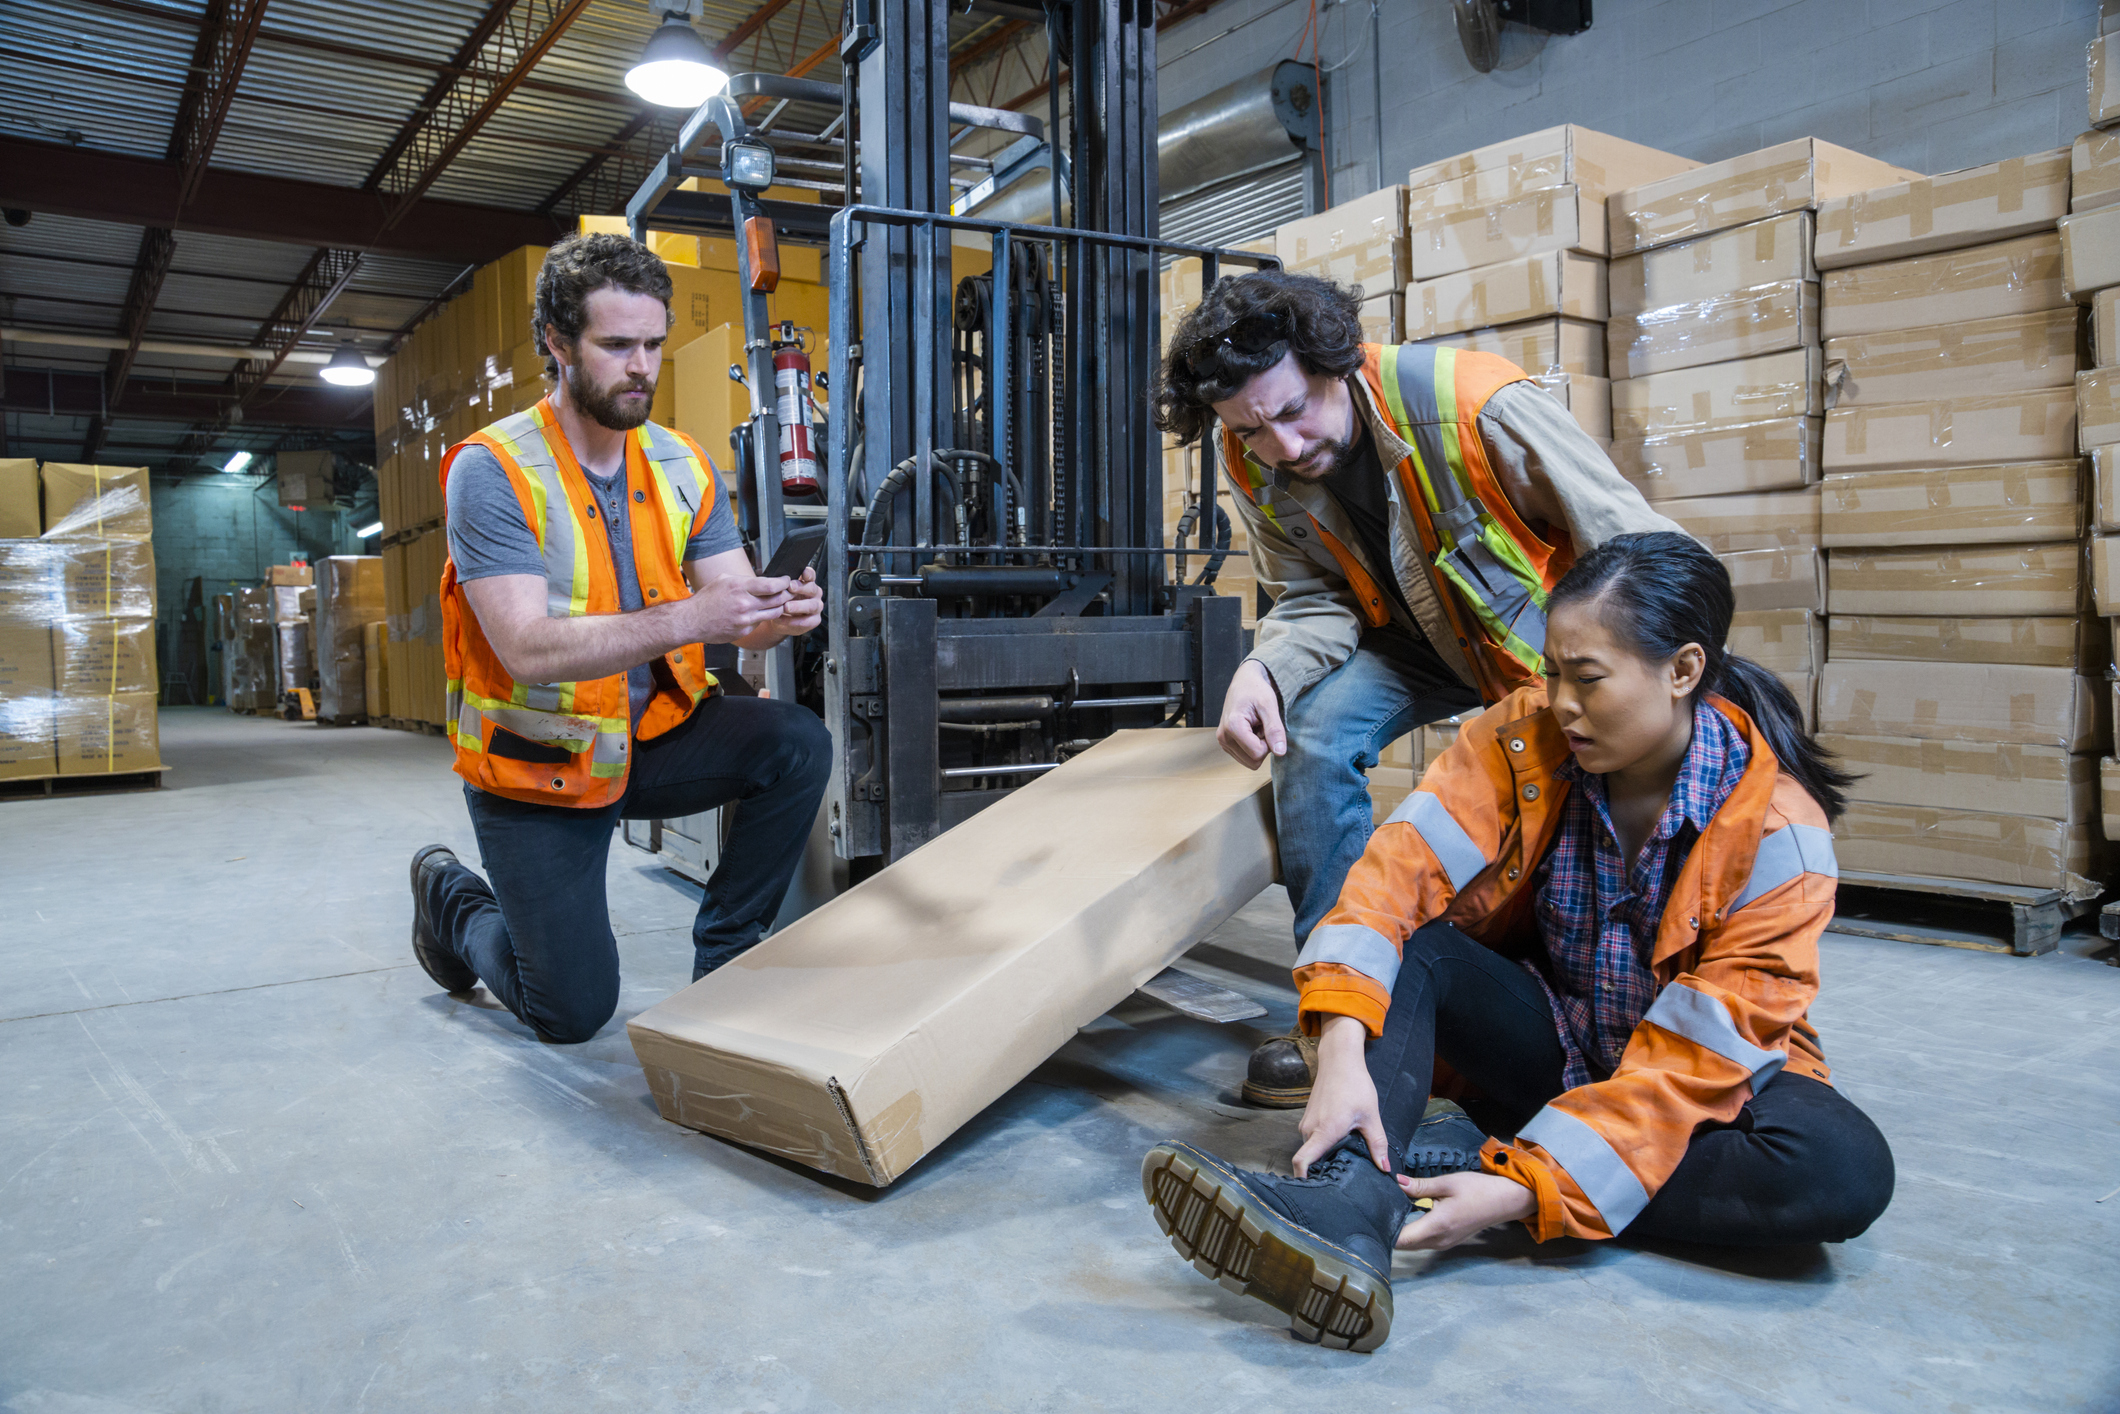 Workers' Compensation Warehouse Injuries in Florida